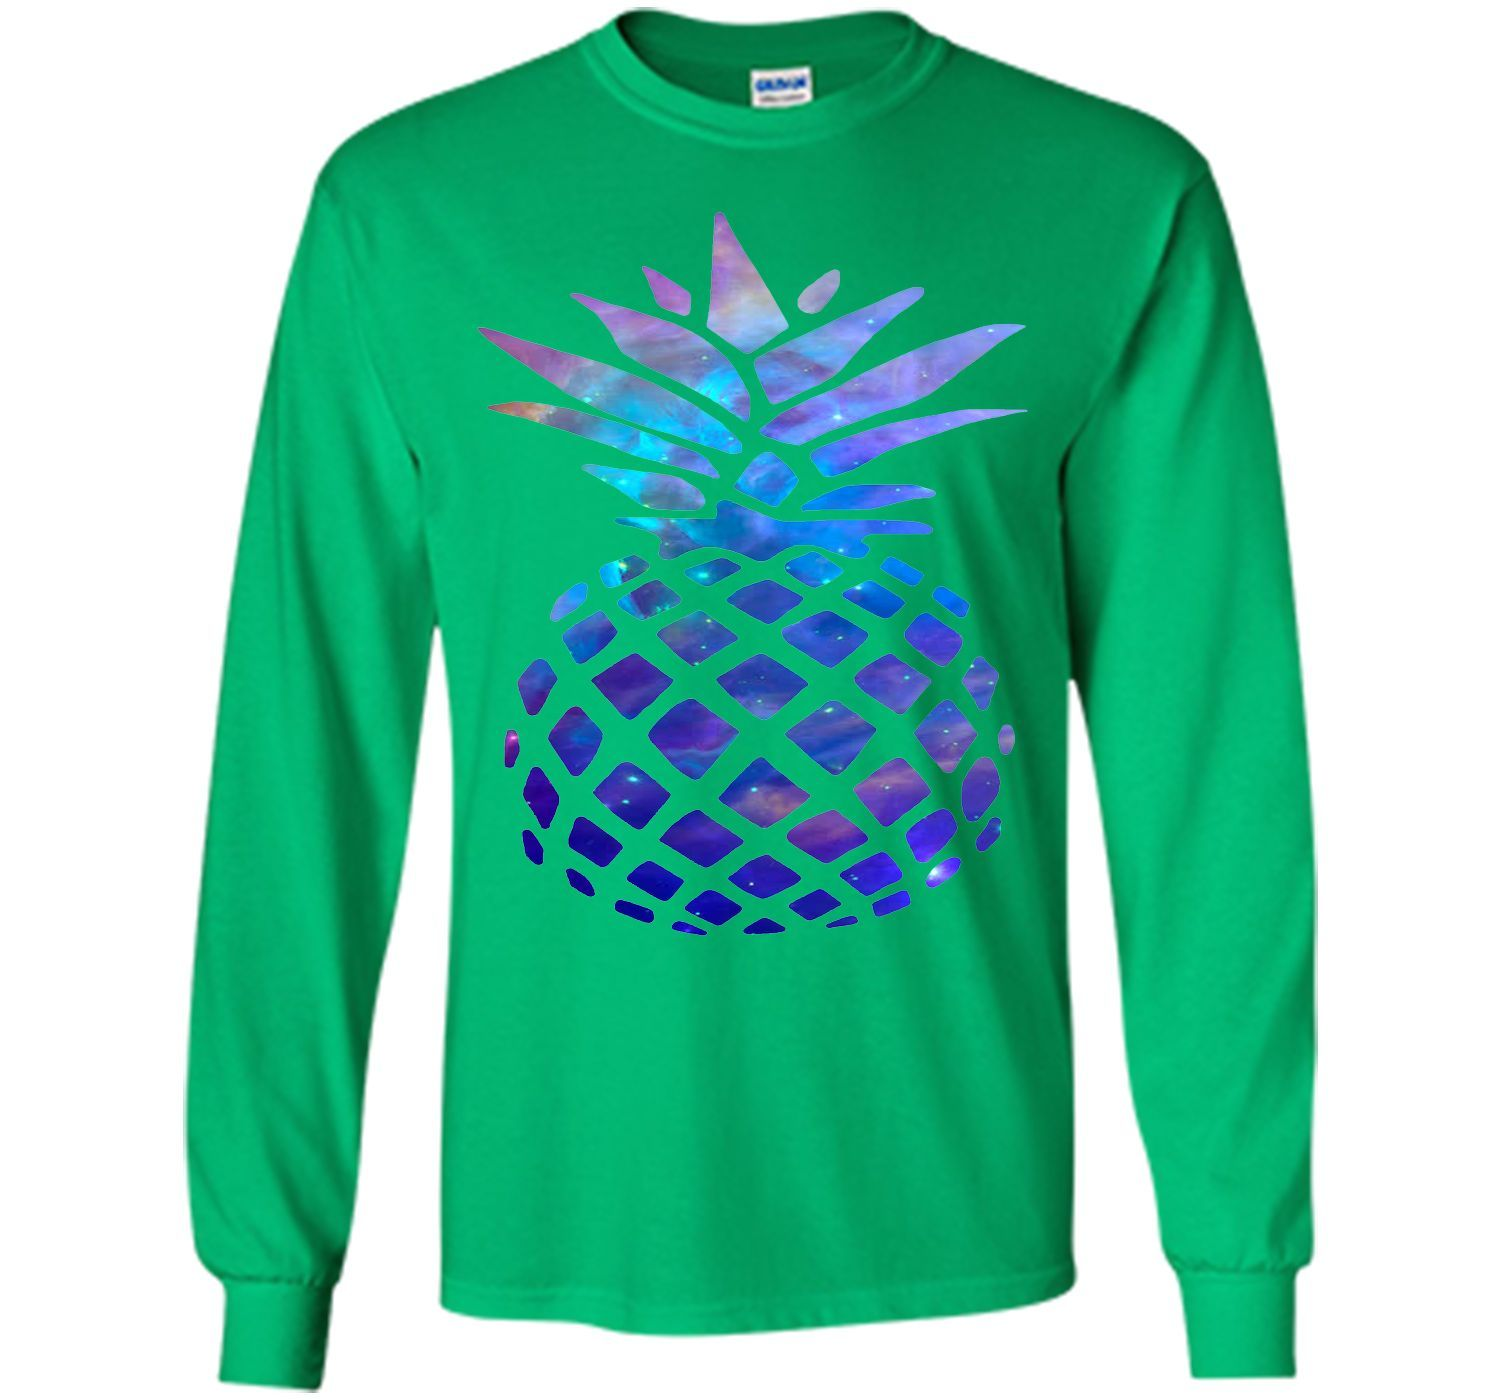 Becoming space pineapple express t shirt products pinterest